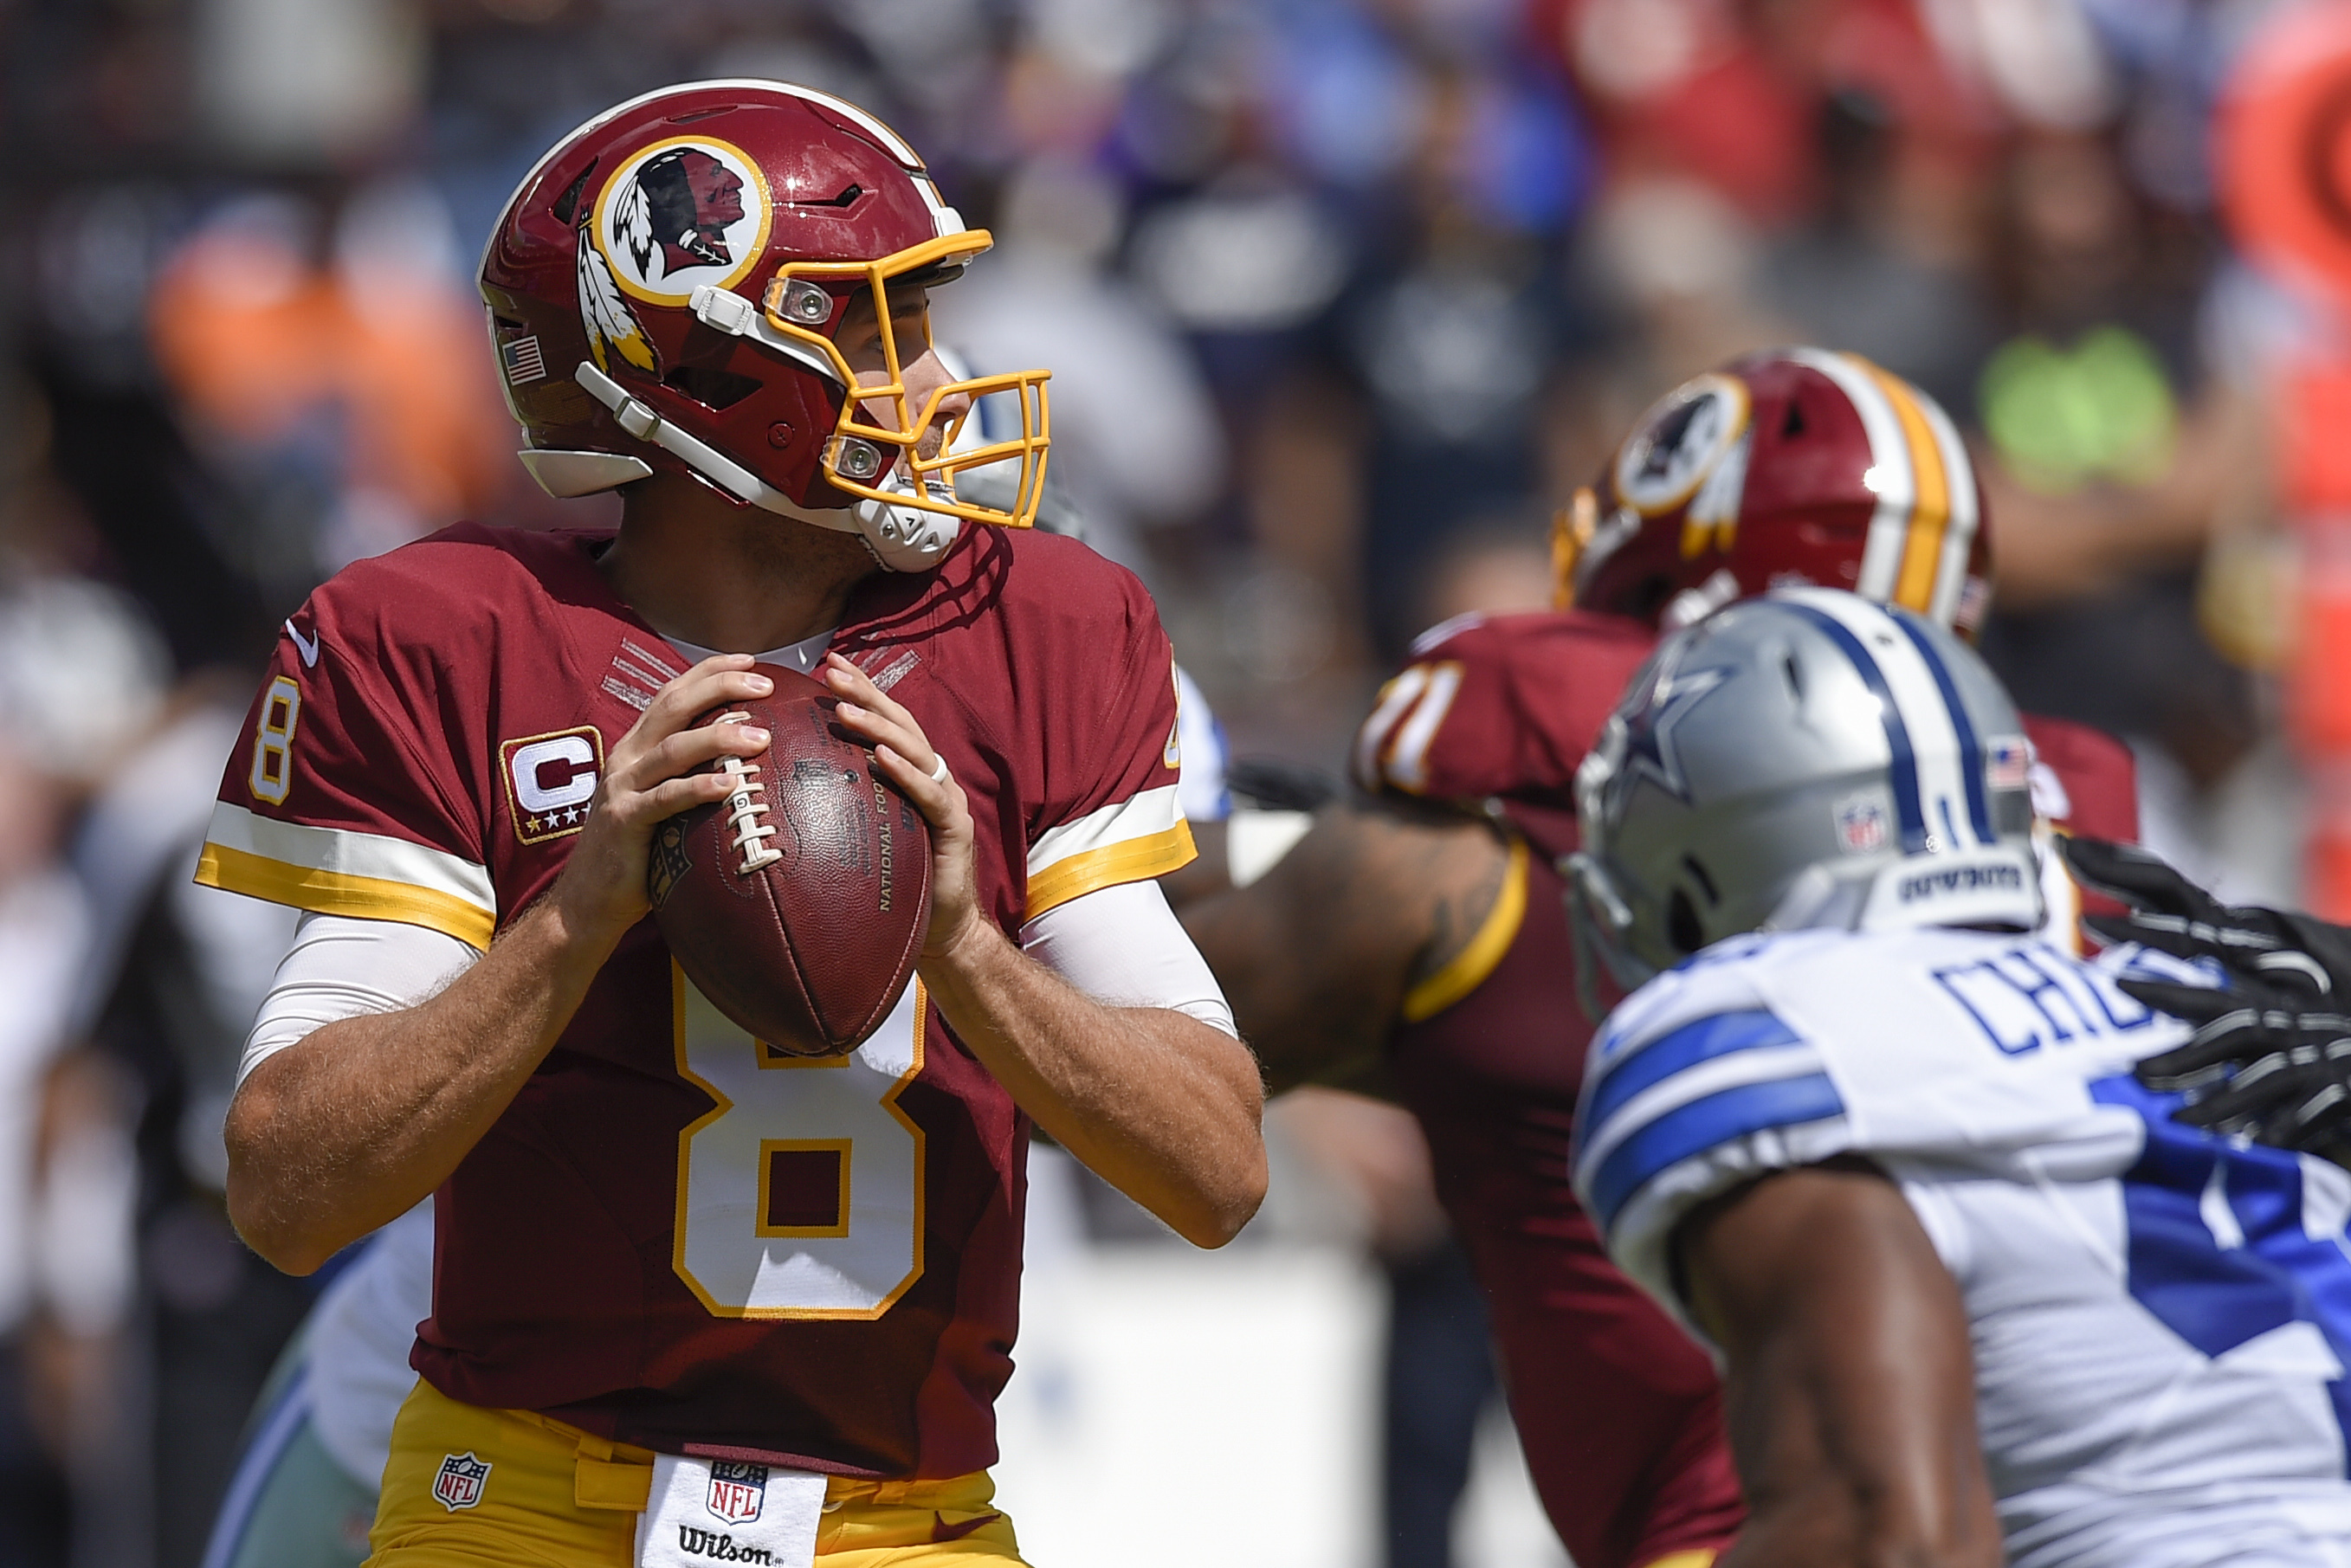 Washington Redskins quarterback Kirk Cousins (8) looks for and open man during the first half of an NFL football game against the Dallas Cowboys in Landover, Md., Sunday, Sept. 18, 2016. (AP Photo/Nick Wass)